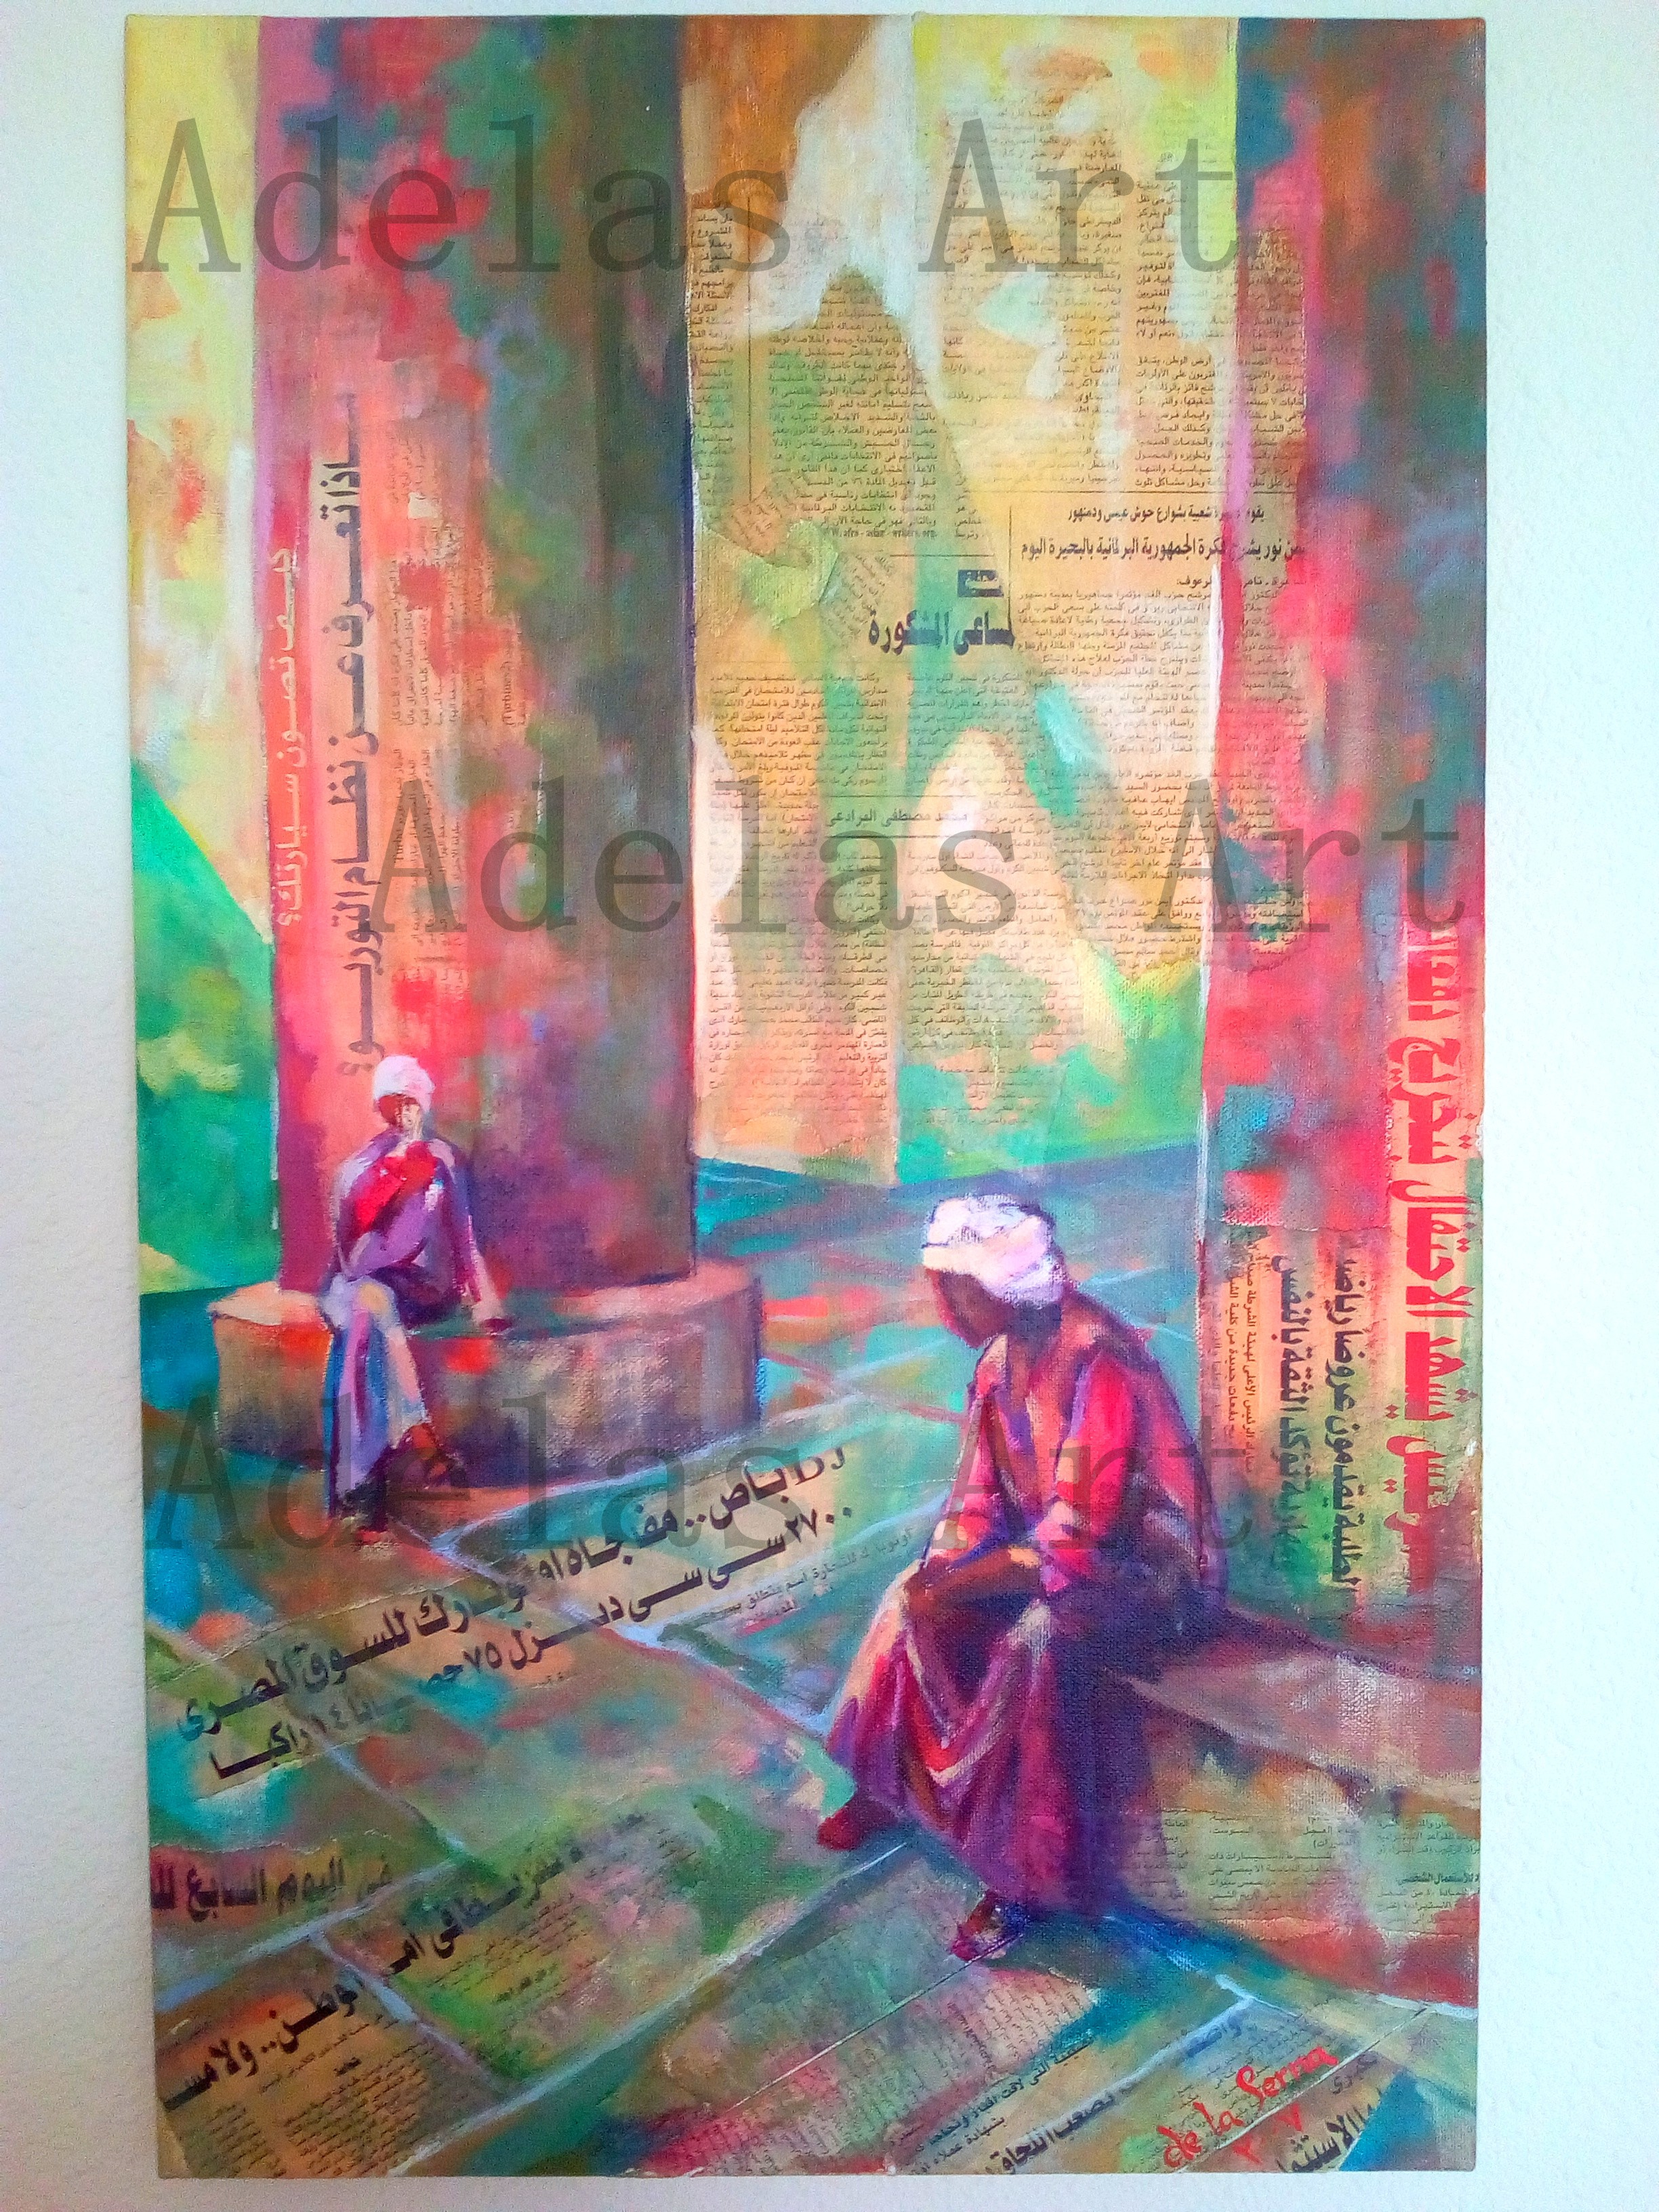 """In the shadow of the nile"" by Adelas Art - front view"